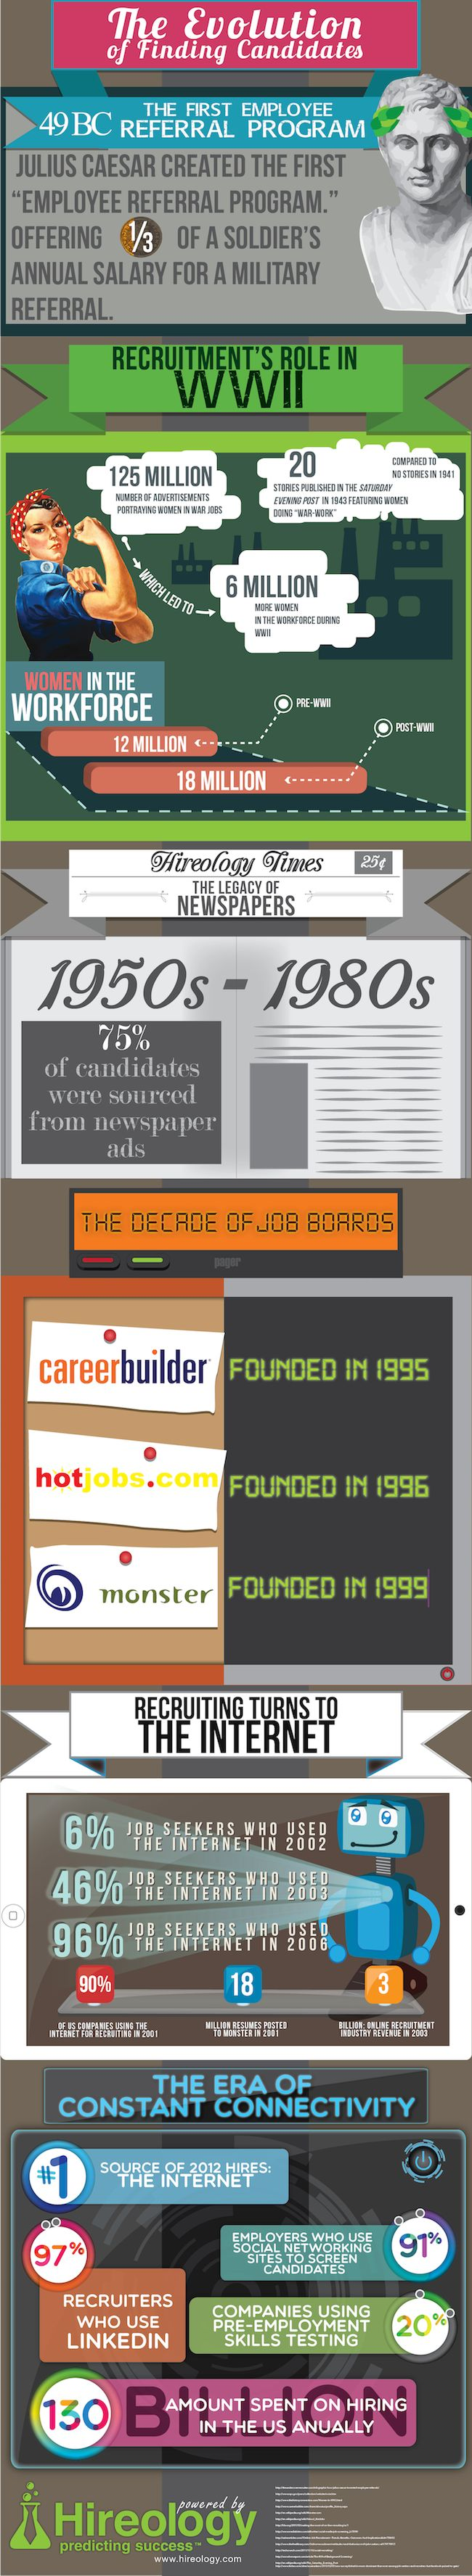 The Evolution of Finding Candidates INFOGRAPHIC 44